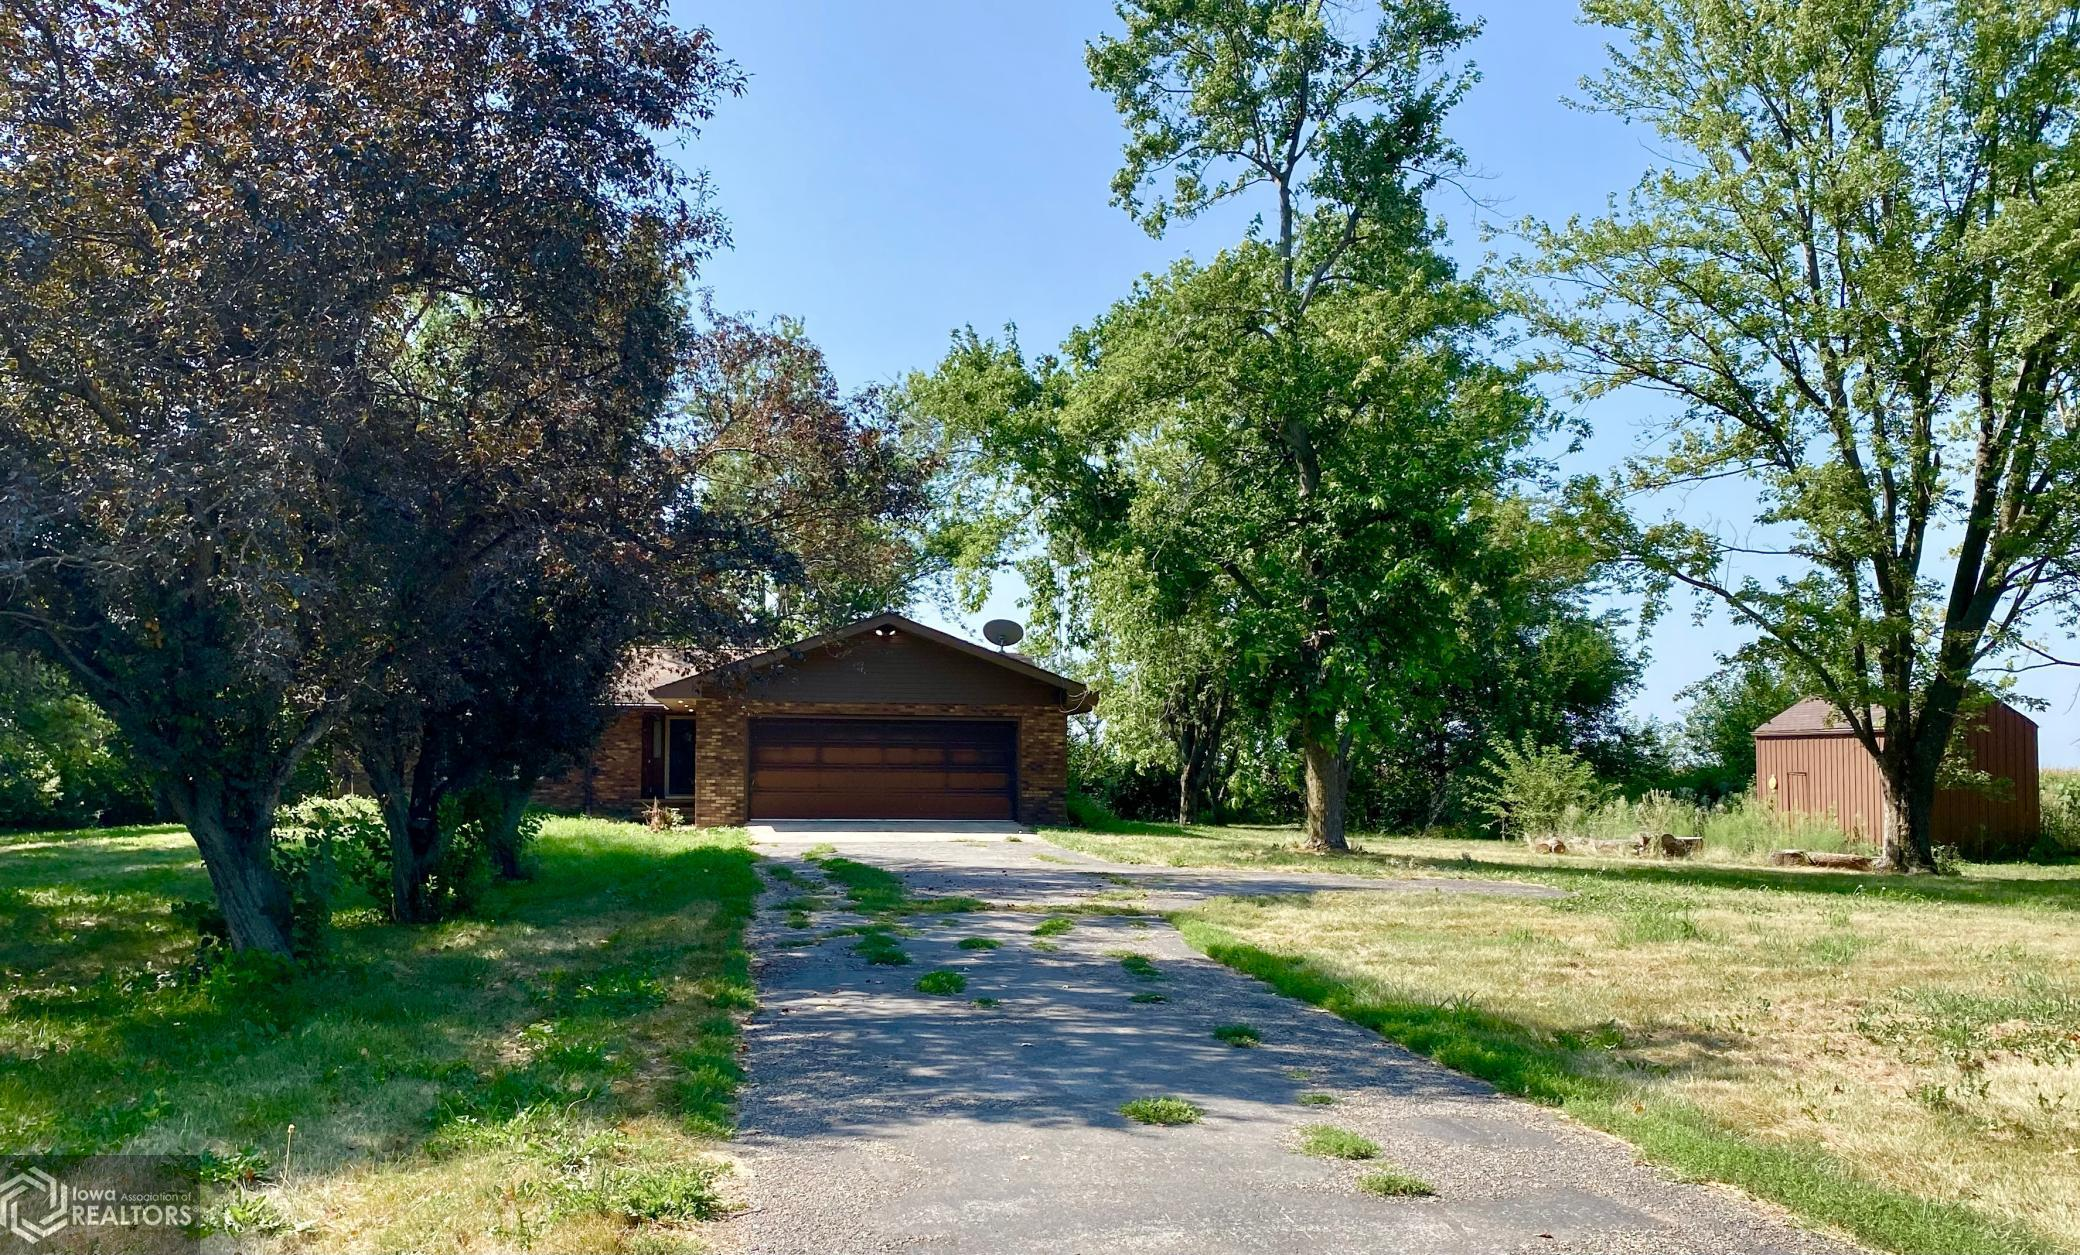 1124 Old 6, Malcom, Iowa 50157-8081, 2 Bedrooms Bedrooms, ,1 BathroomBathrooms,Single Family,For Sale,Old 6,6086841